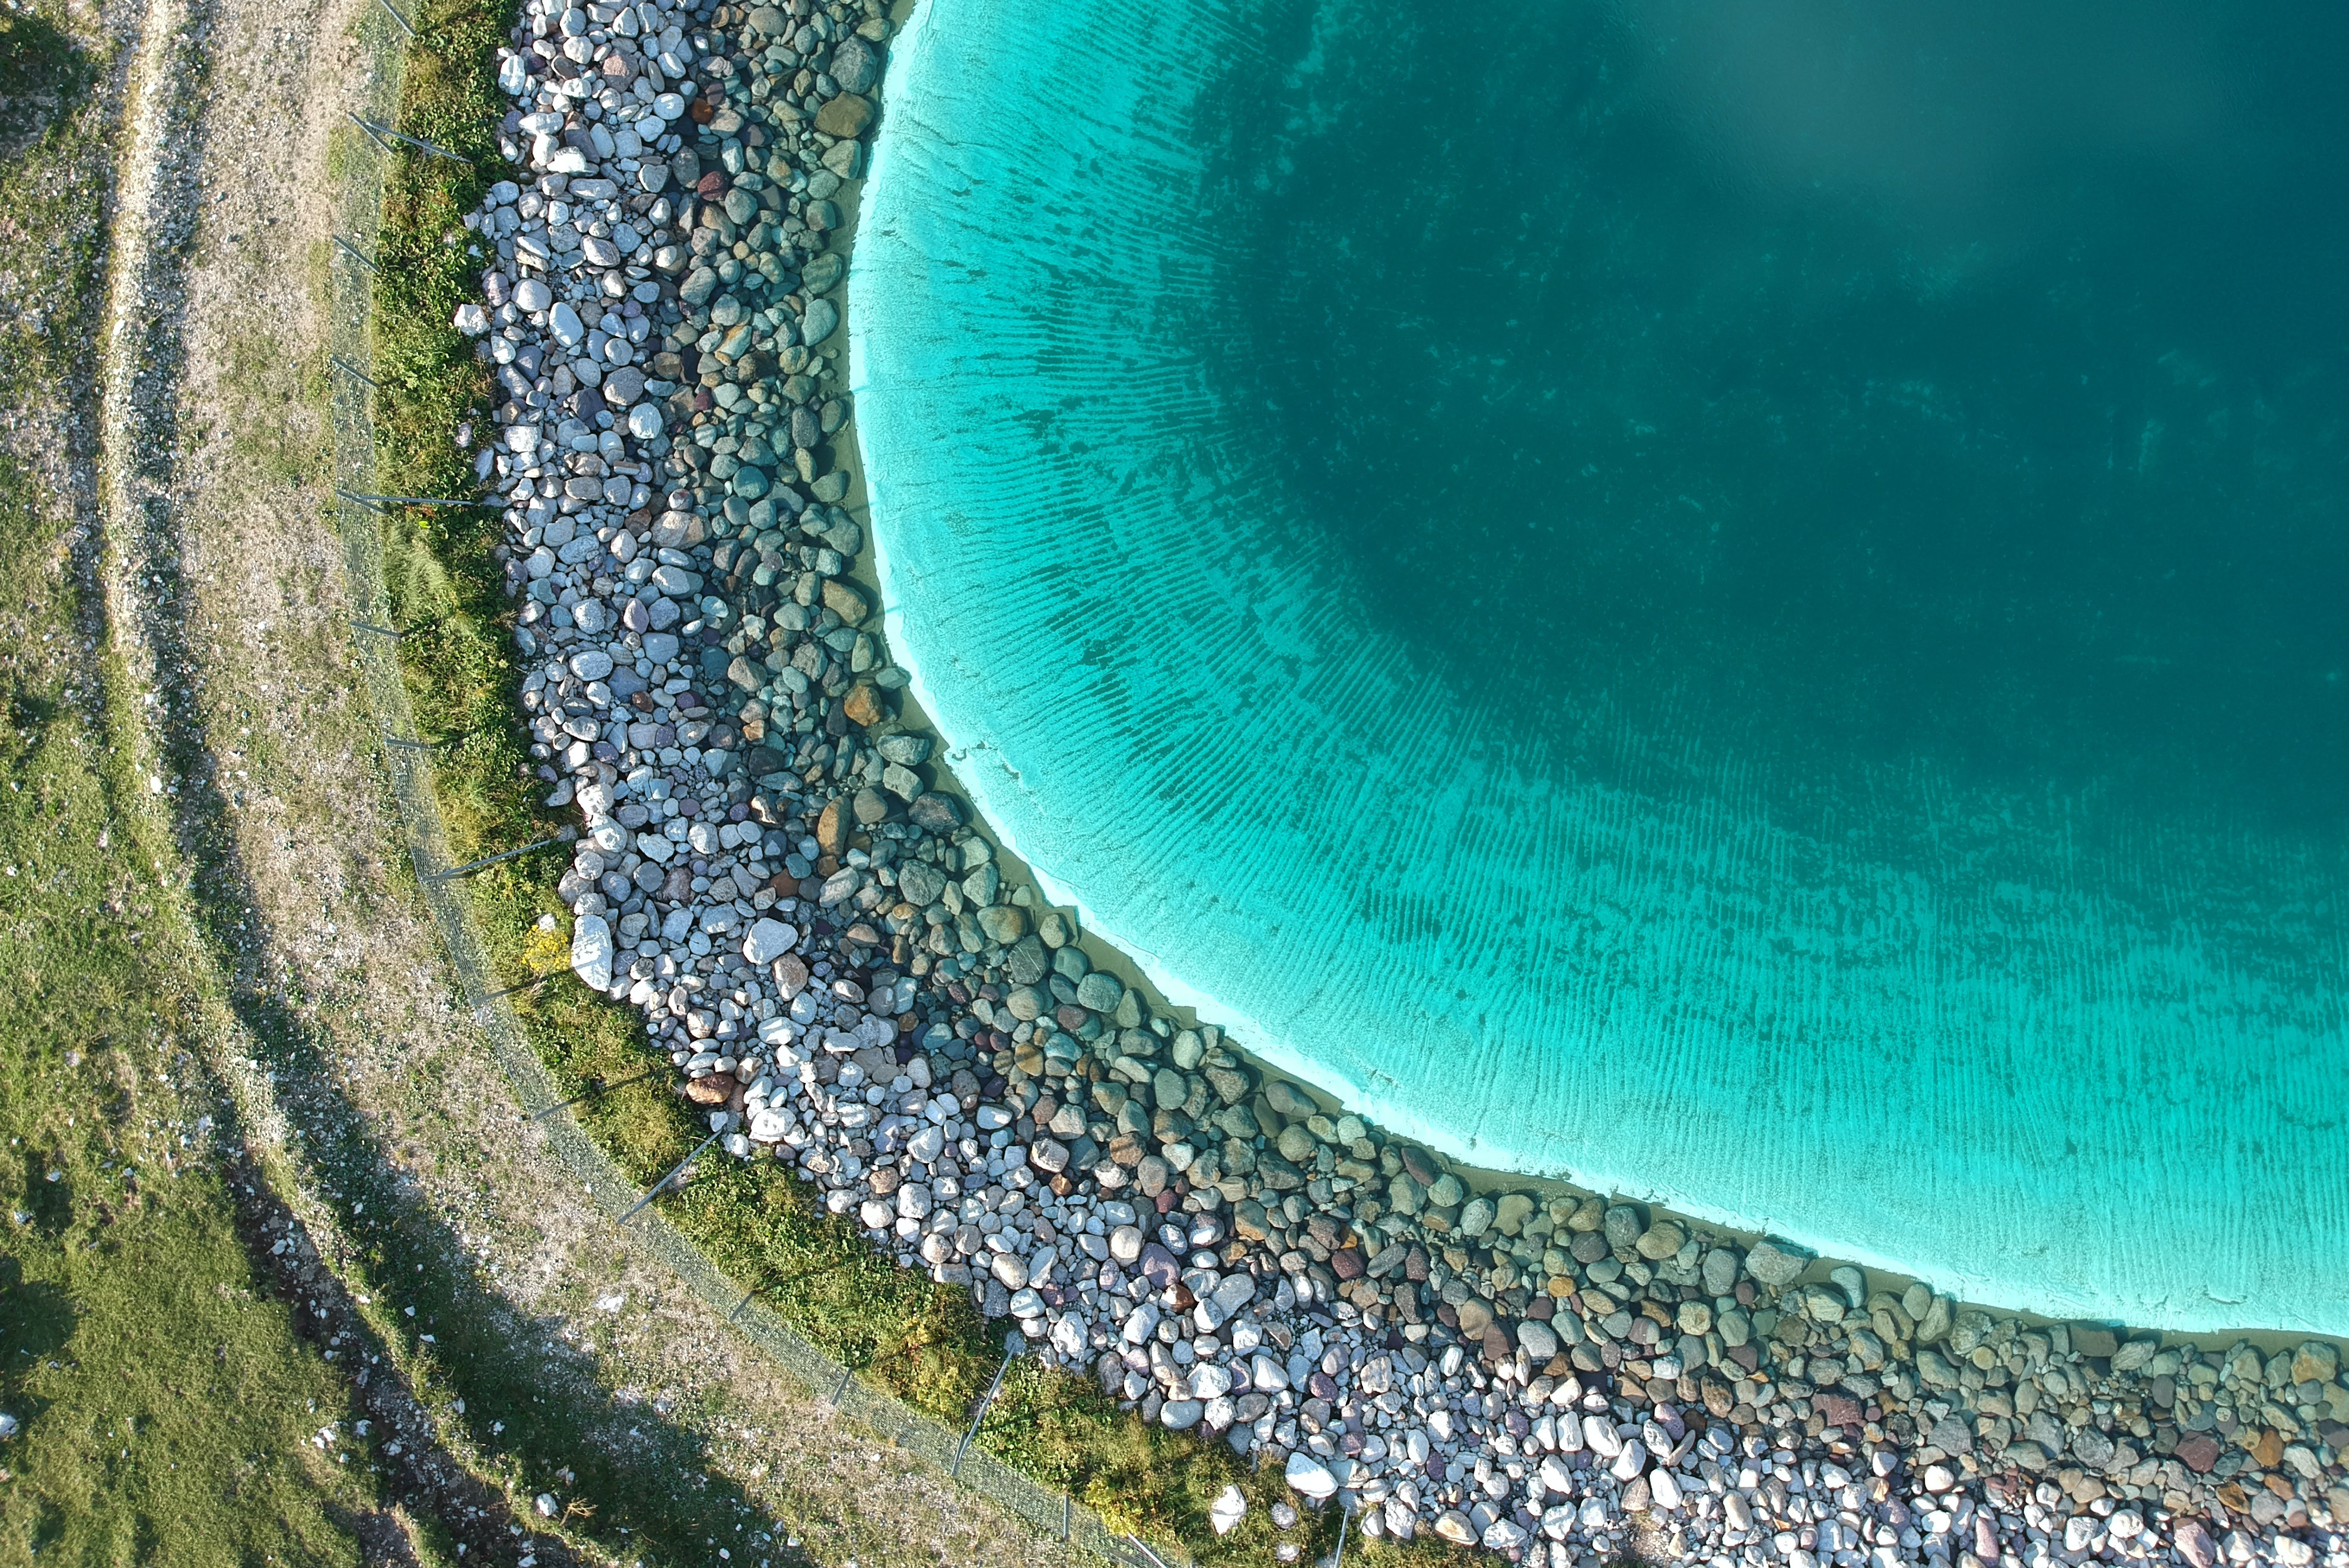 aerial photography of body of water surrounded with stones during daytime